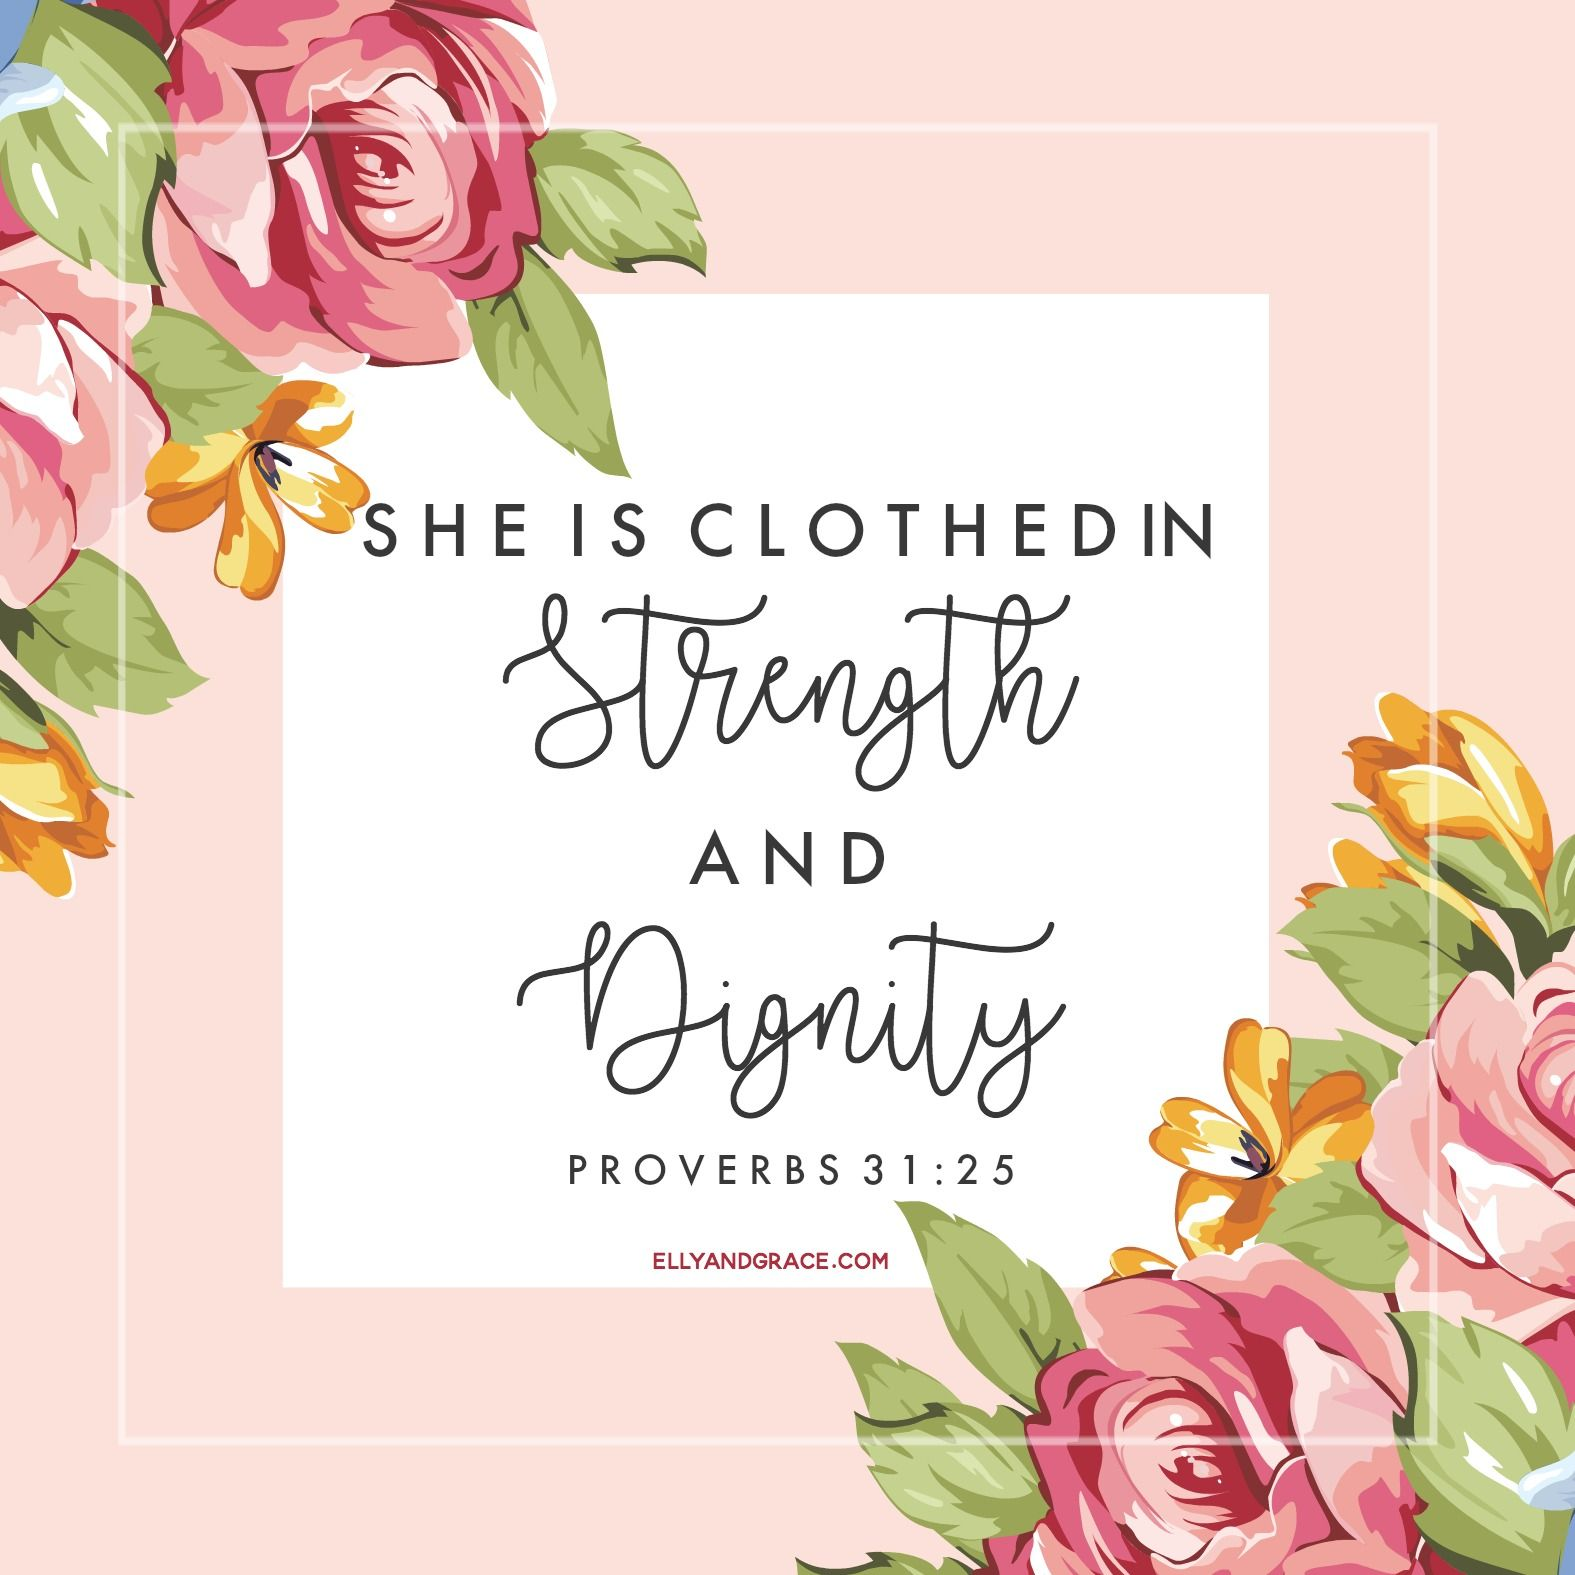 Indoor Dignity Short Sleeve Christian Shirt Short Bible Quotes About Nature Short Bible Quotes About Happiness She Is Clod Dignity Short Sleeve Christian Shirt She Is Clod Strength Strength inspiration Short Bible Quotes